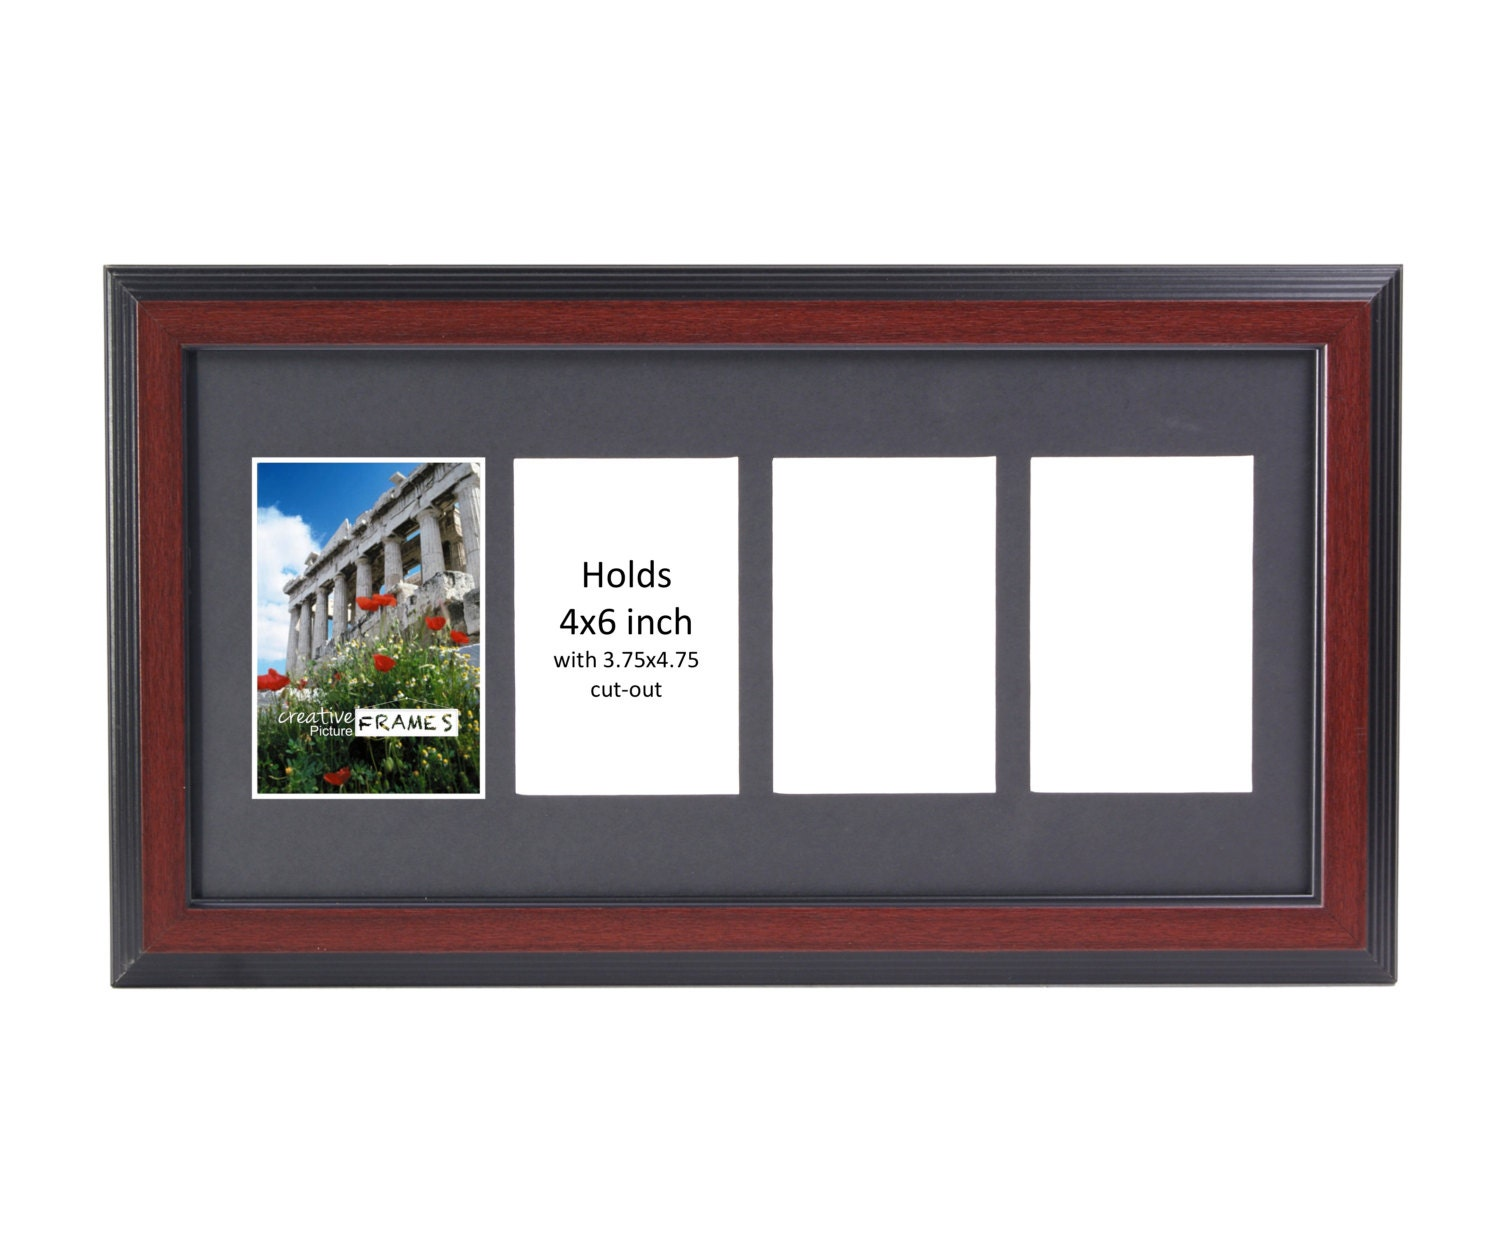 mahogany picture frame 2 3 4 5 6 7 8 9 10 opening glass face. Black Bedroom Furniture Sets. Home Design Ideas